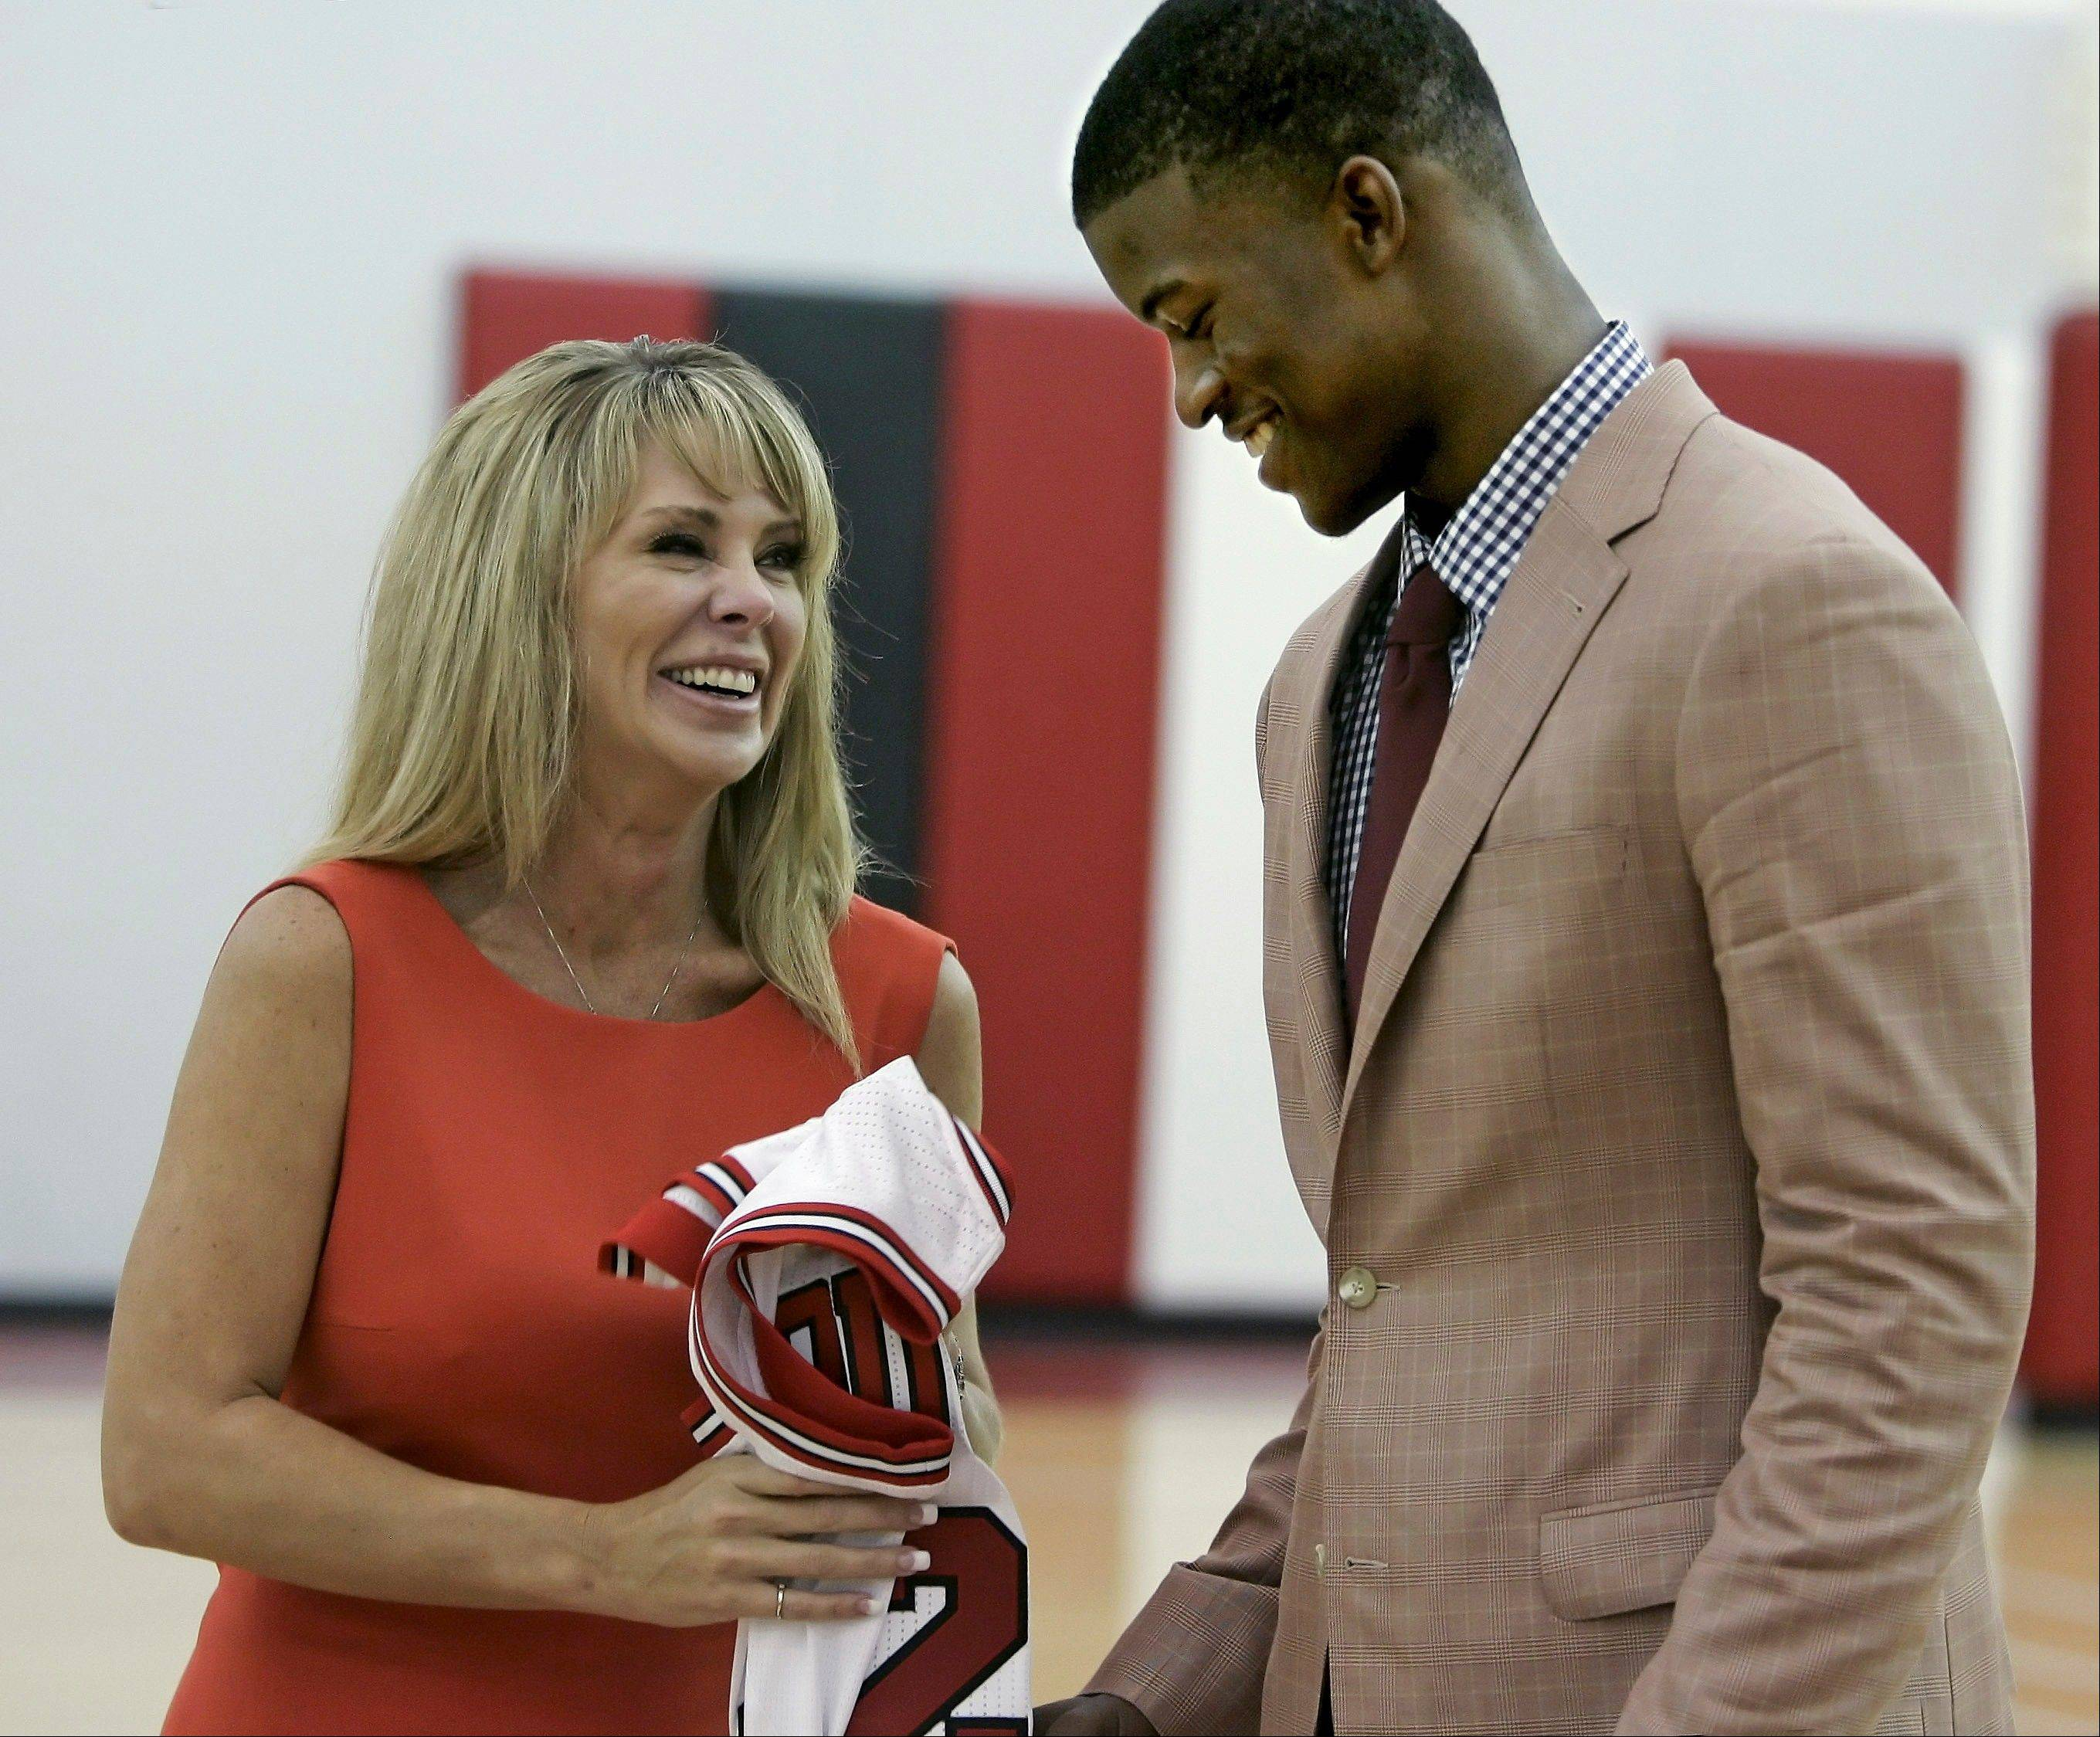 Chicago Bulls first-round draft pick Jimmy Butler from Marquette laughs with his mother, Michelle Lambert, after he was introduced by the Bulls Monday at the Berto Center.